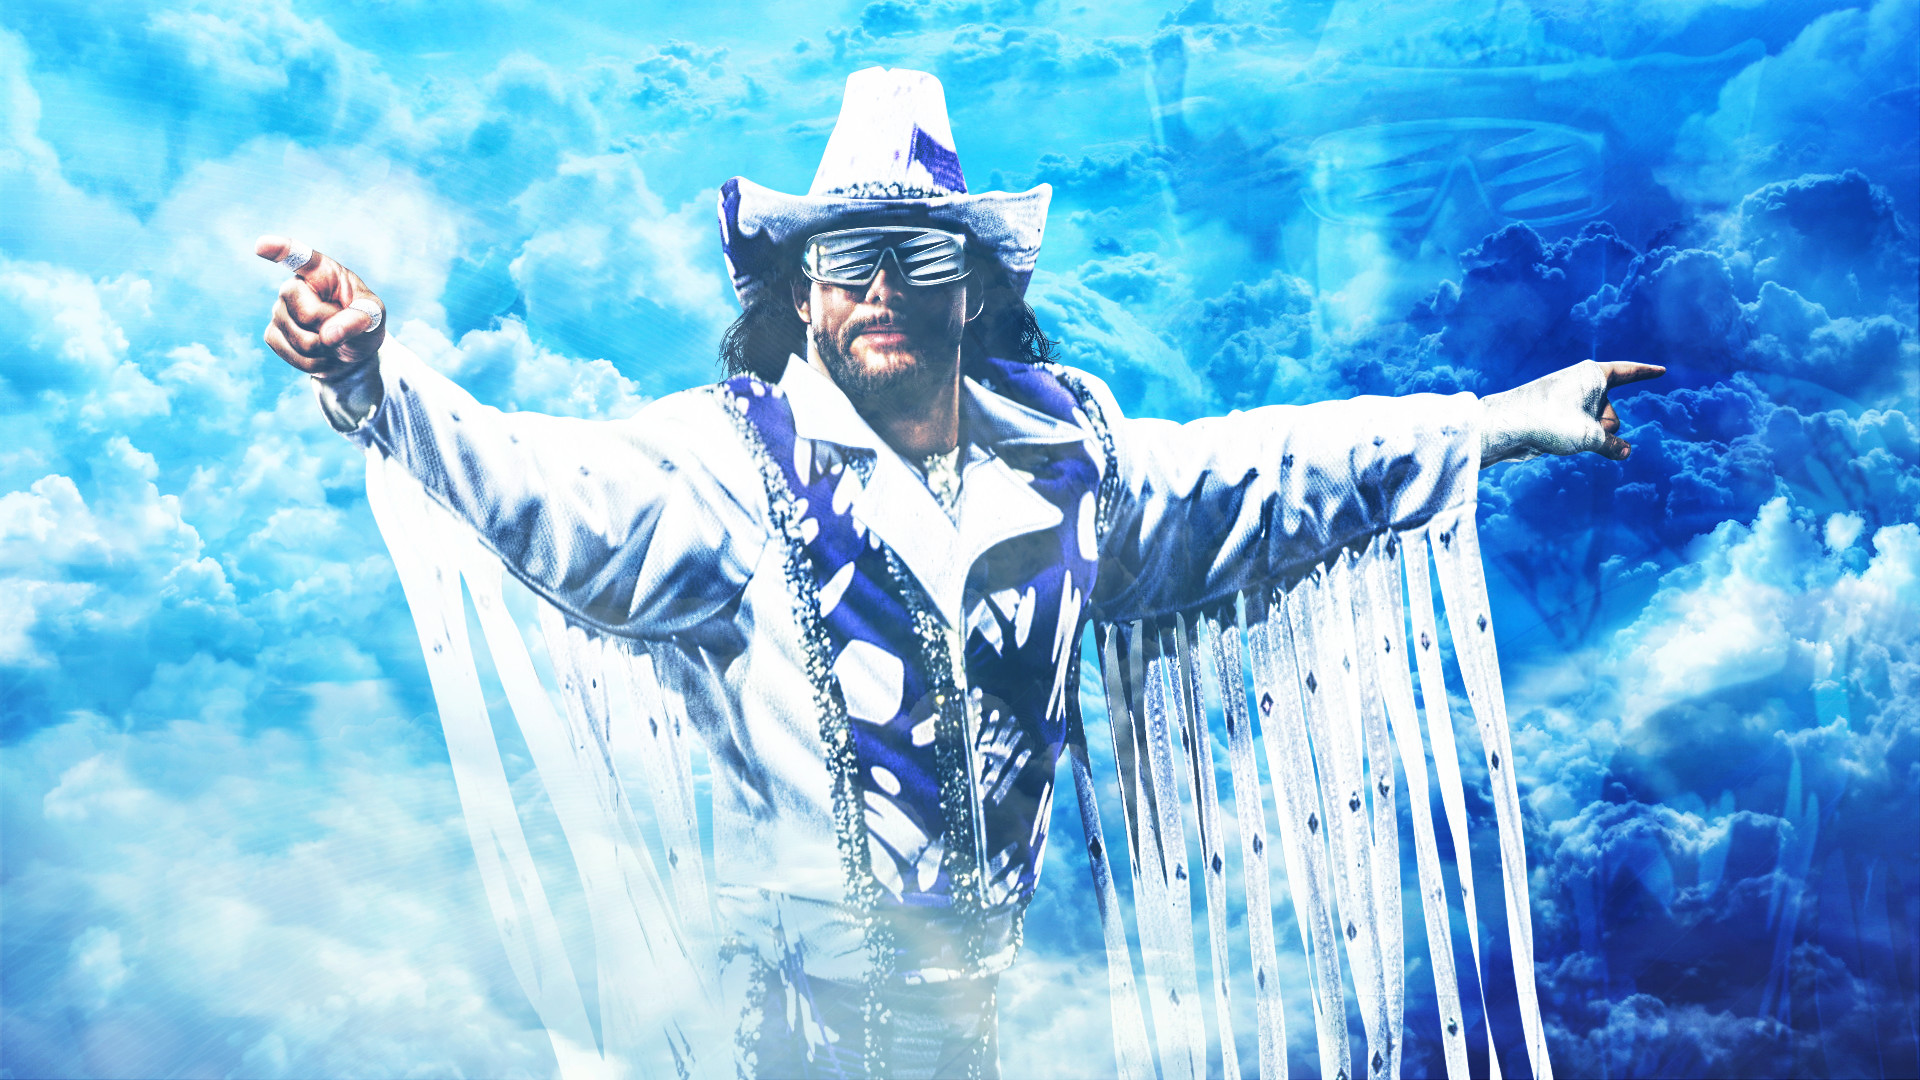 1920x1080 Macho Man Randy Savage wrestling pictures ~ WWE Superstars,WWE .